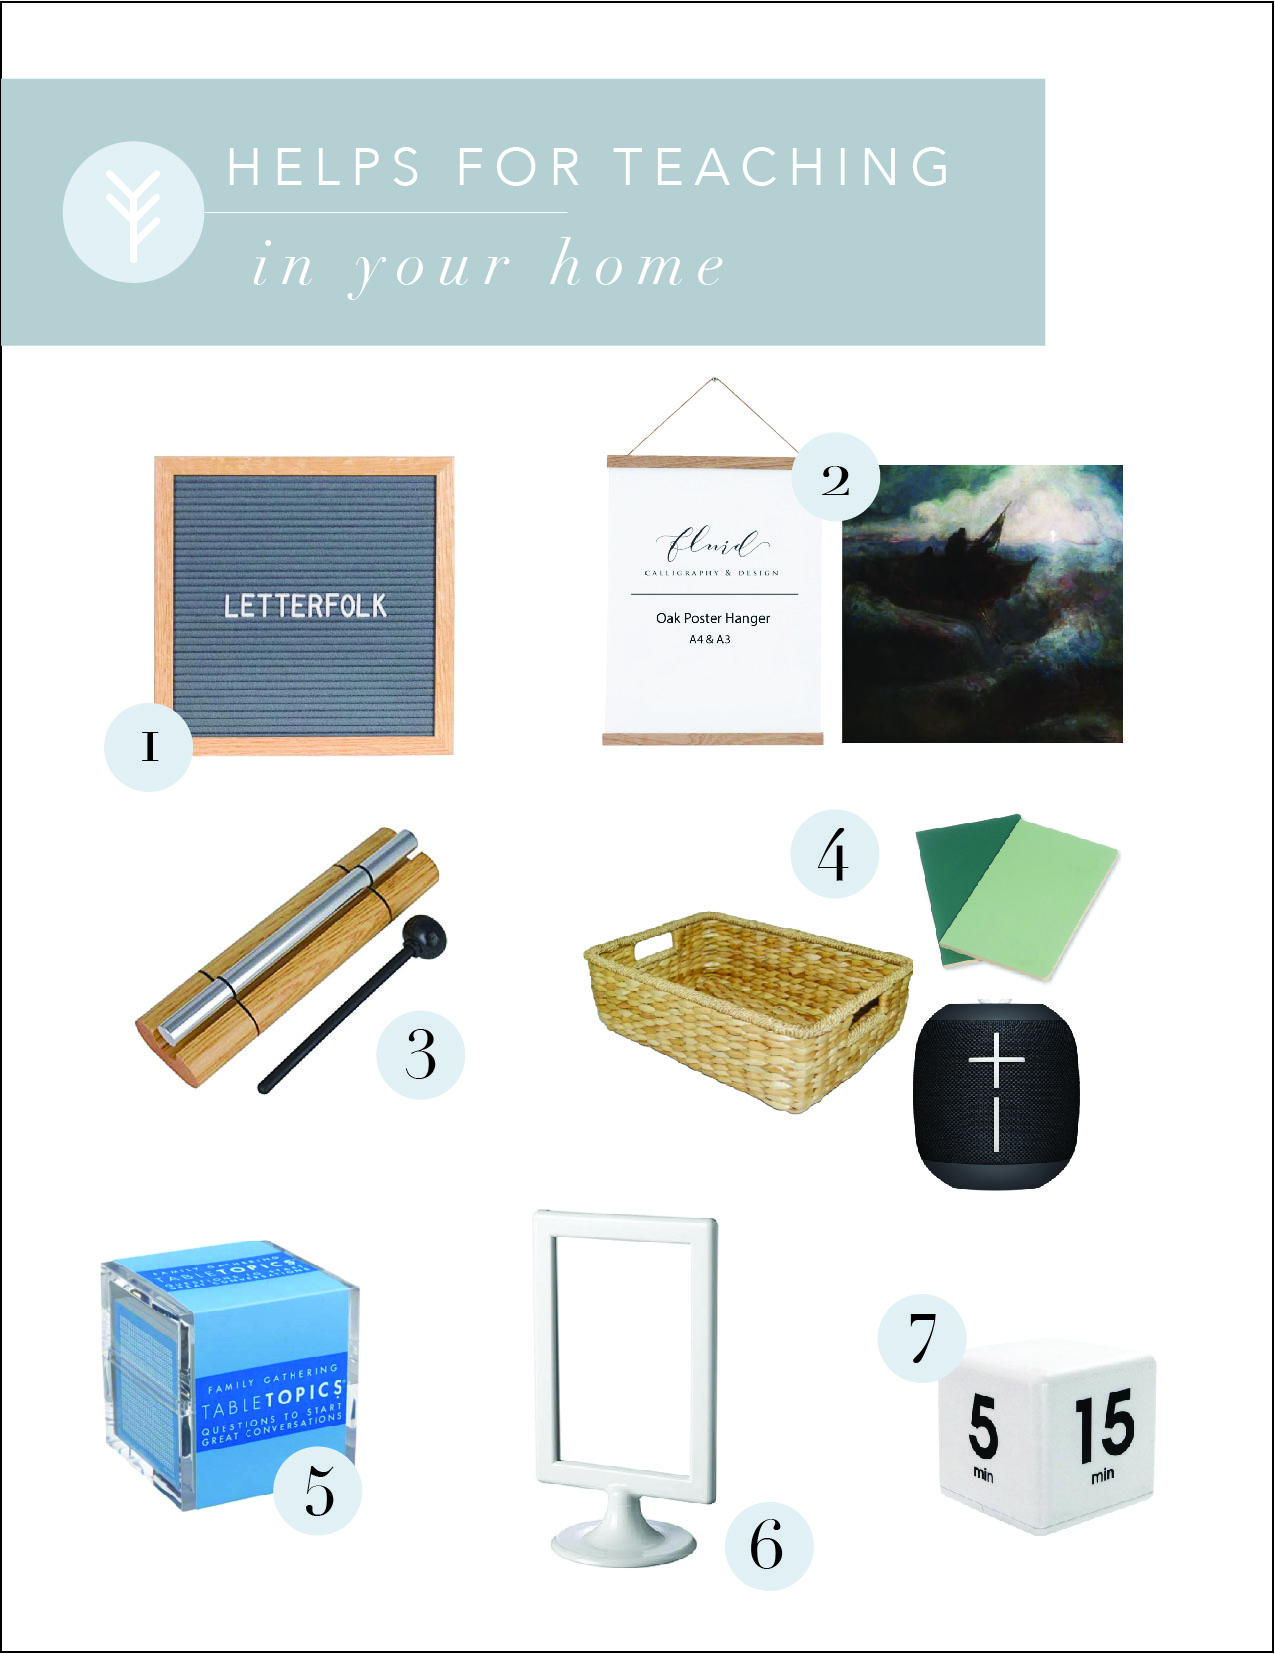 Helps for Teaching in Your Home_v2.jpg